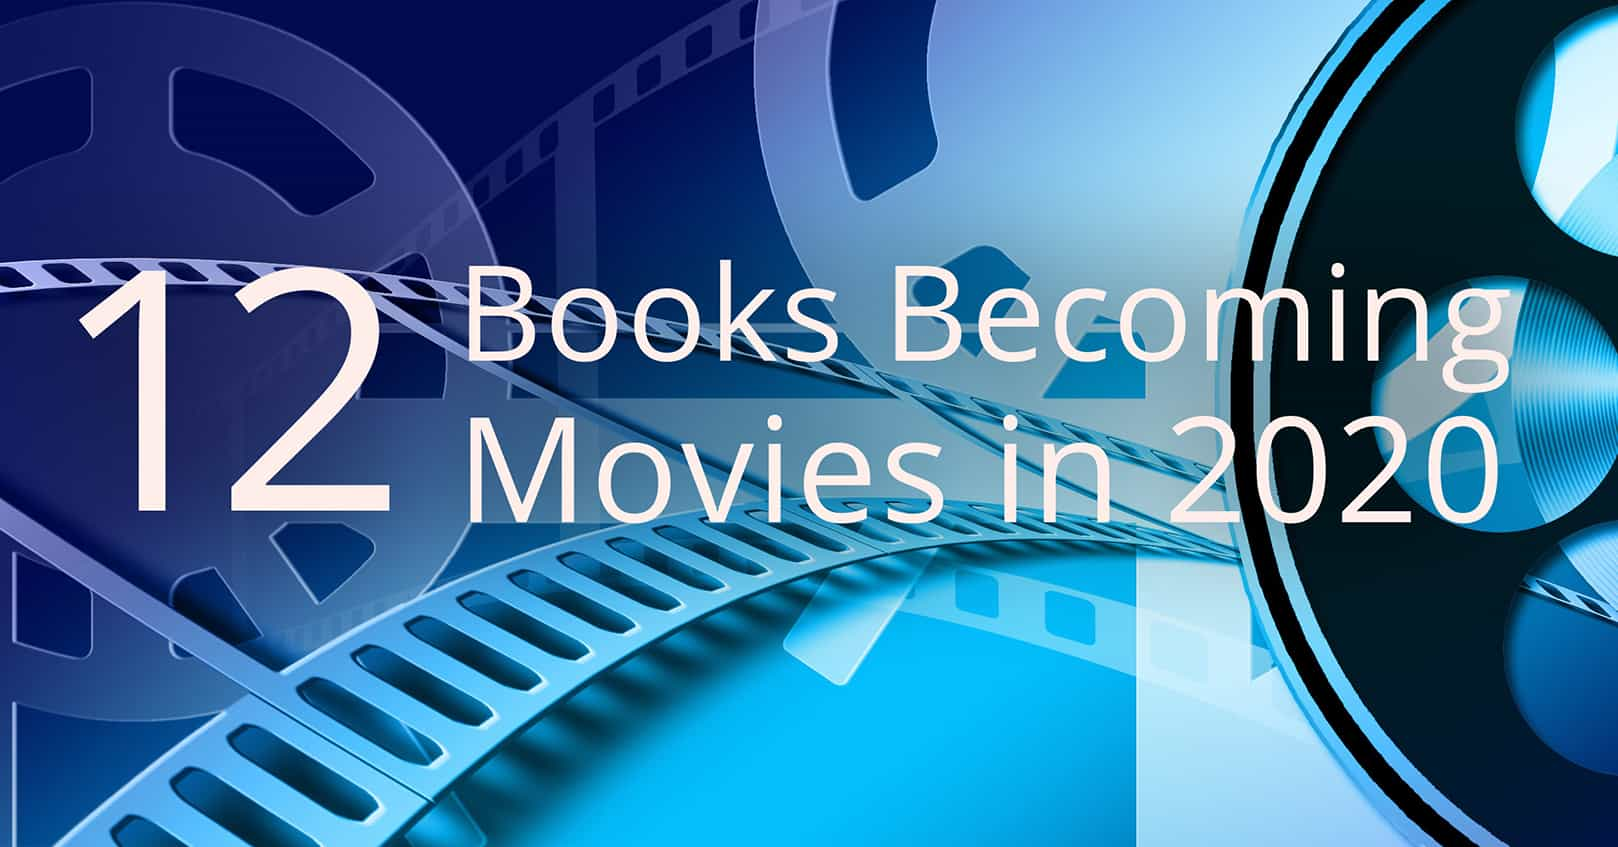 books becoming movies in 2020